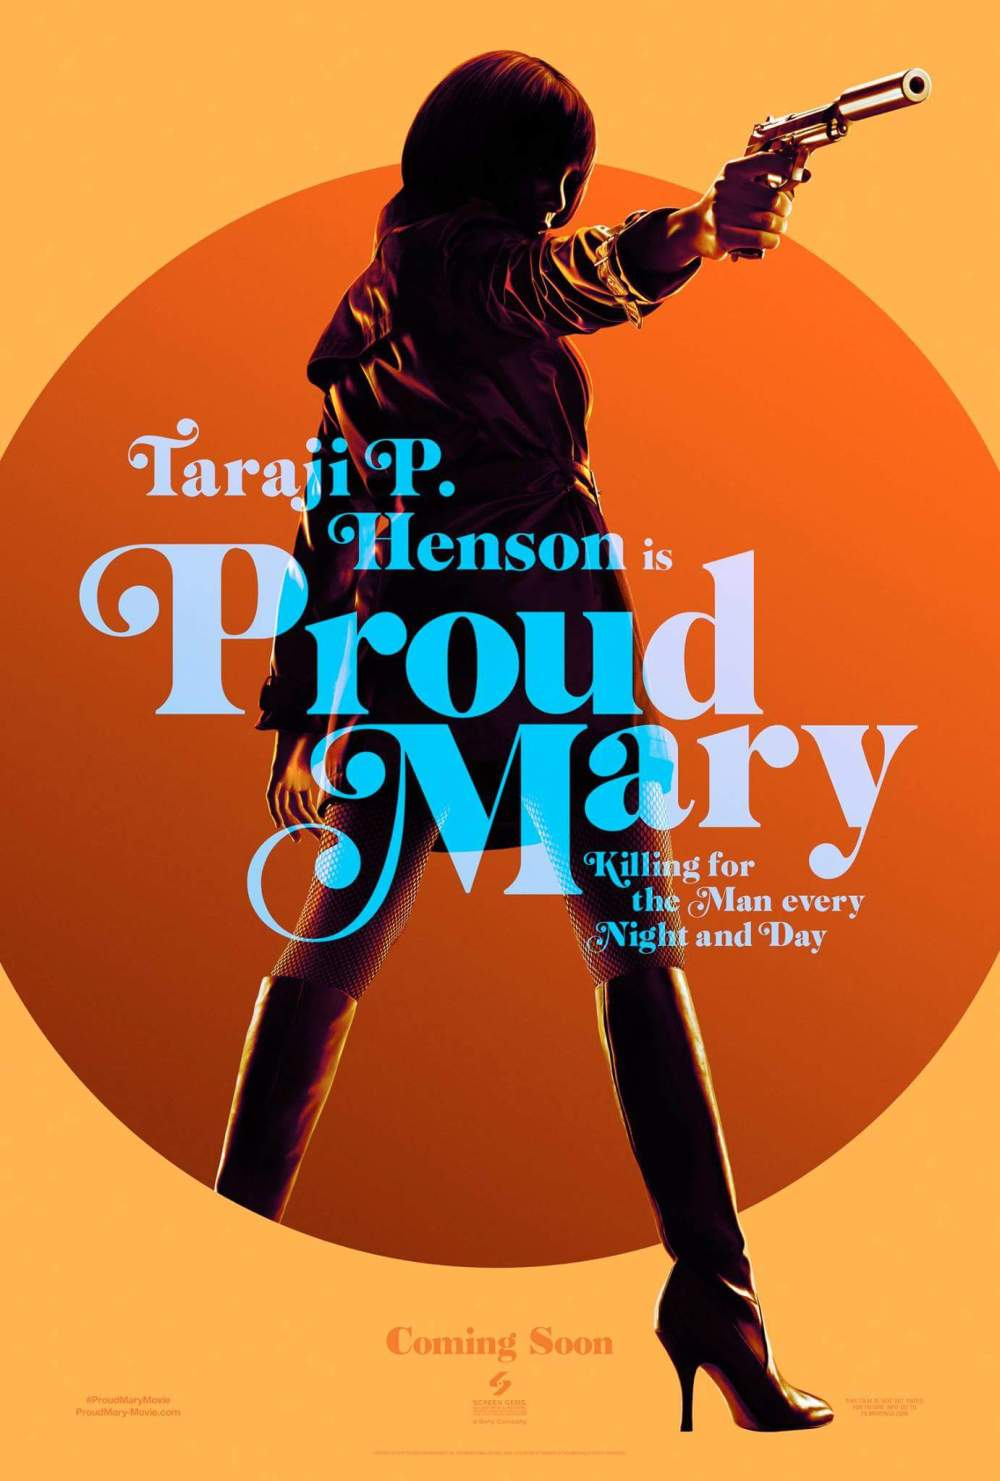 You'll appreciate this - Taraji P. Henson is playing an assassin in the new movie, 'Proud Mary!' 